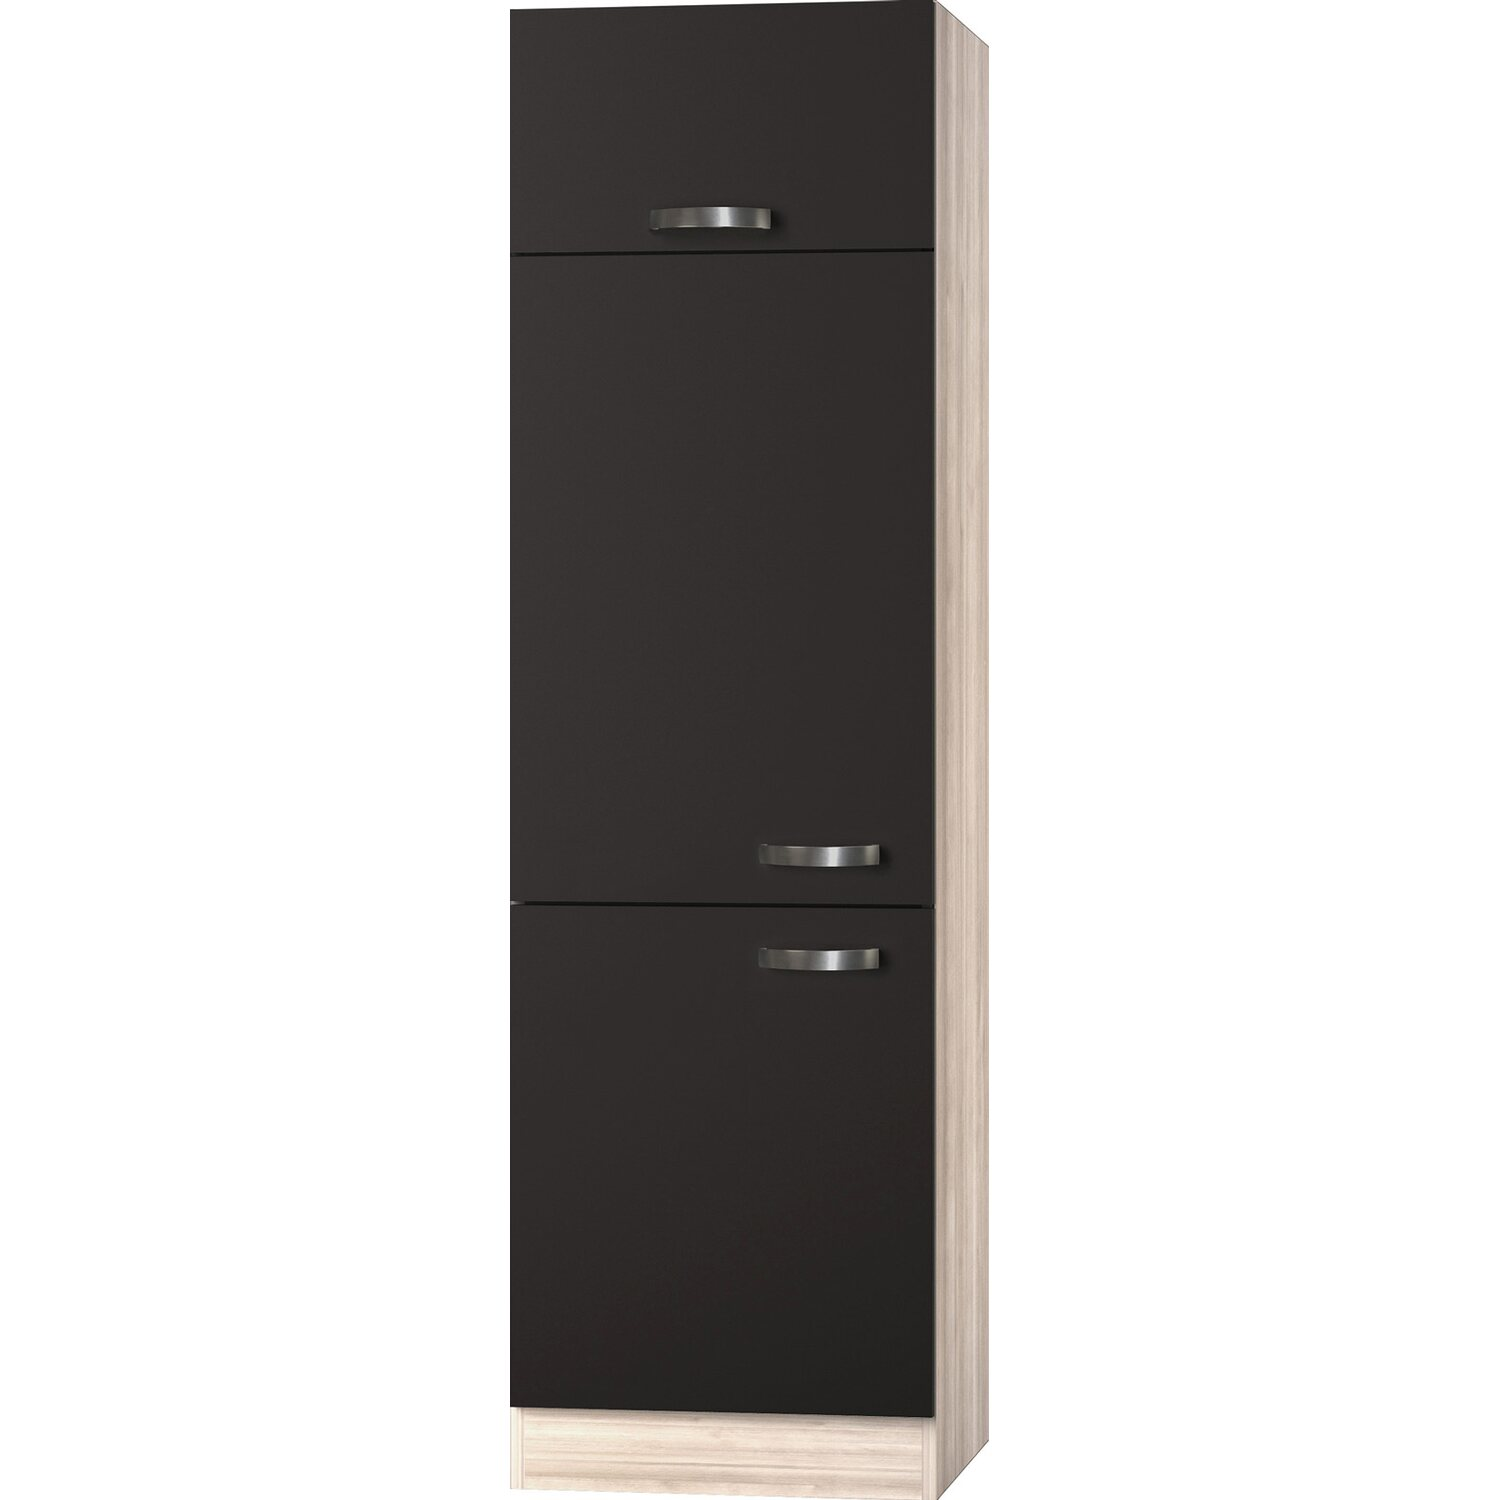 optifit hochschrank f r integrierbaren k hlschrank optikult faro 60 cm kaufen bei obi. Black Bedroom Furniture Sets. Home Design Ideas